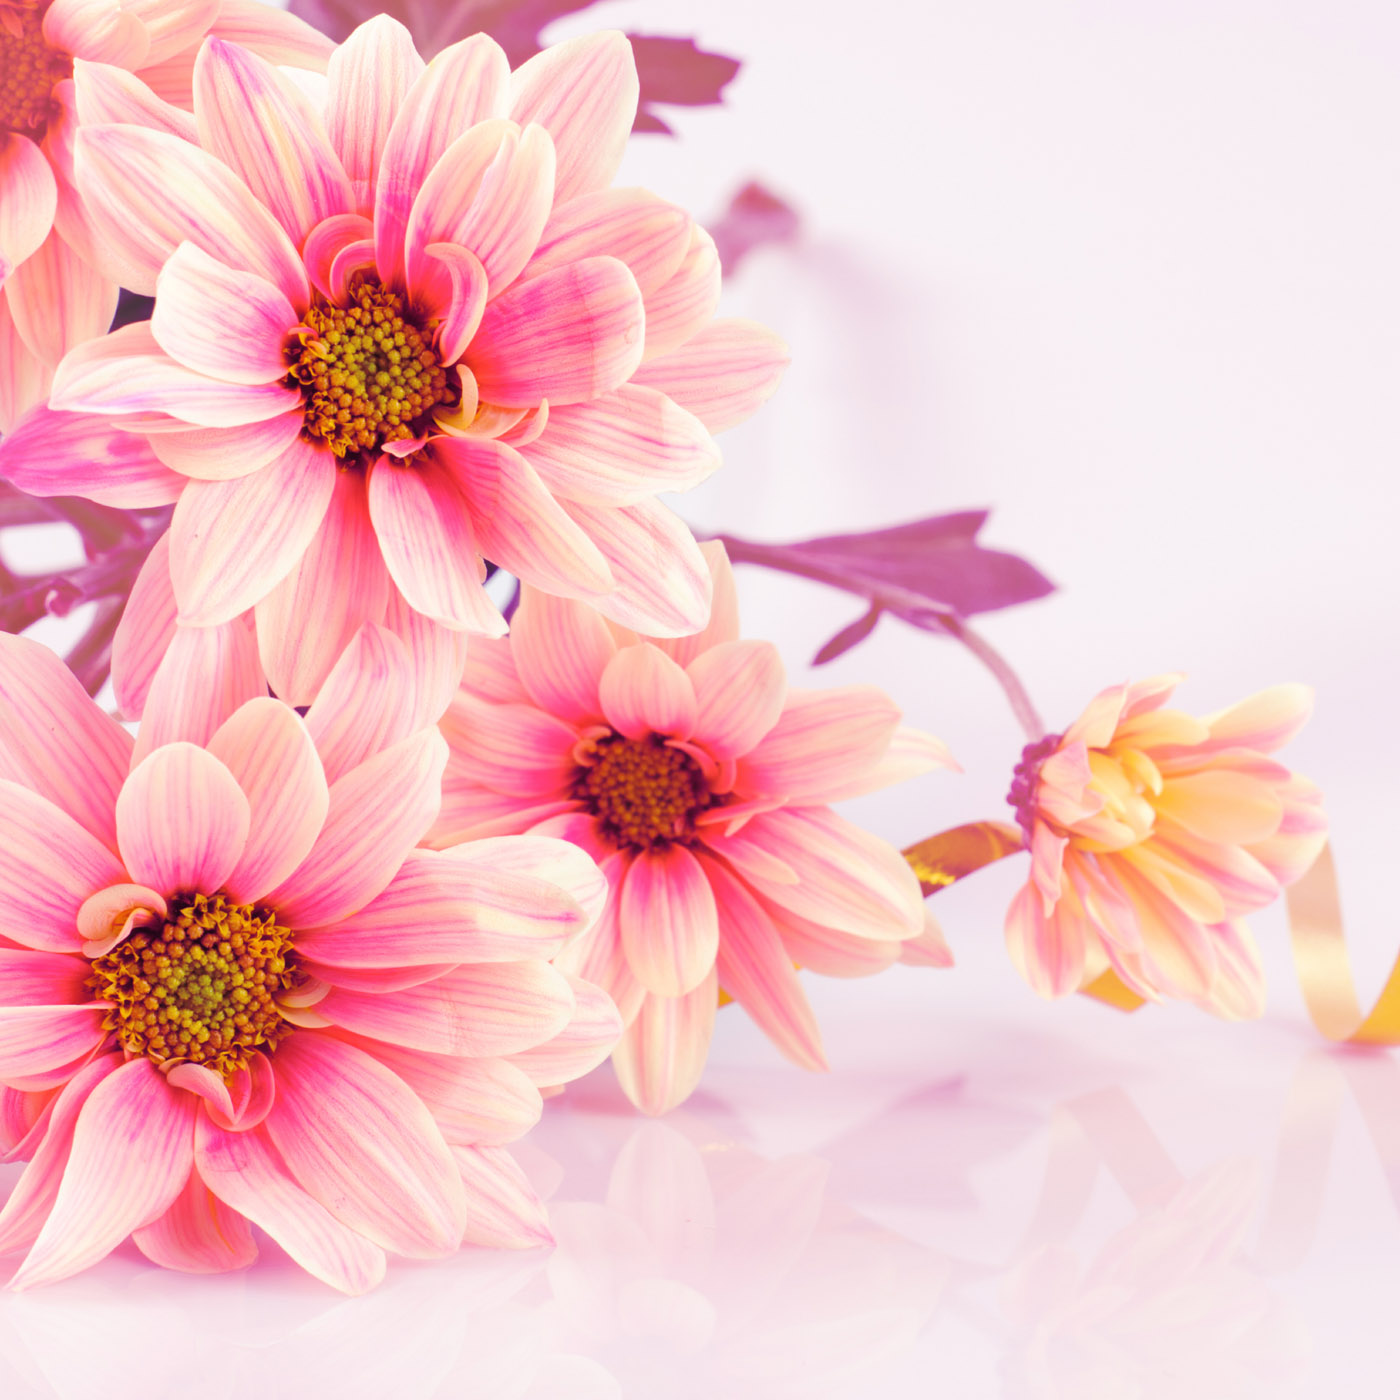 Flower Pics Wallpapers (23 Wallpapers)